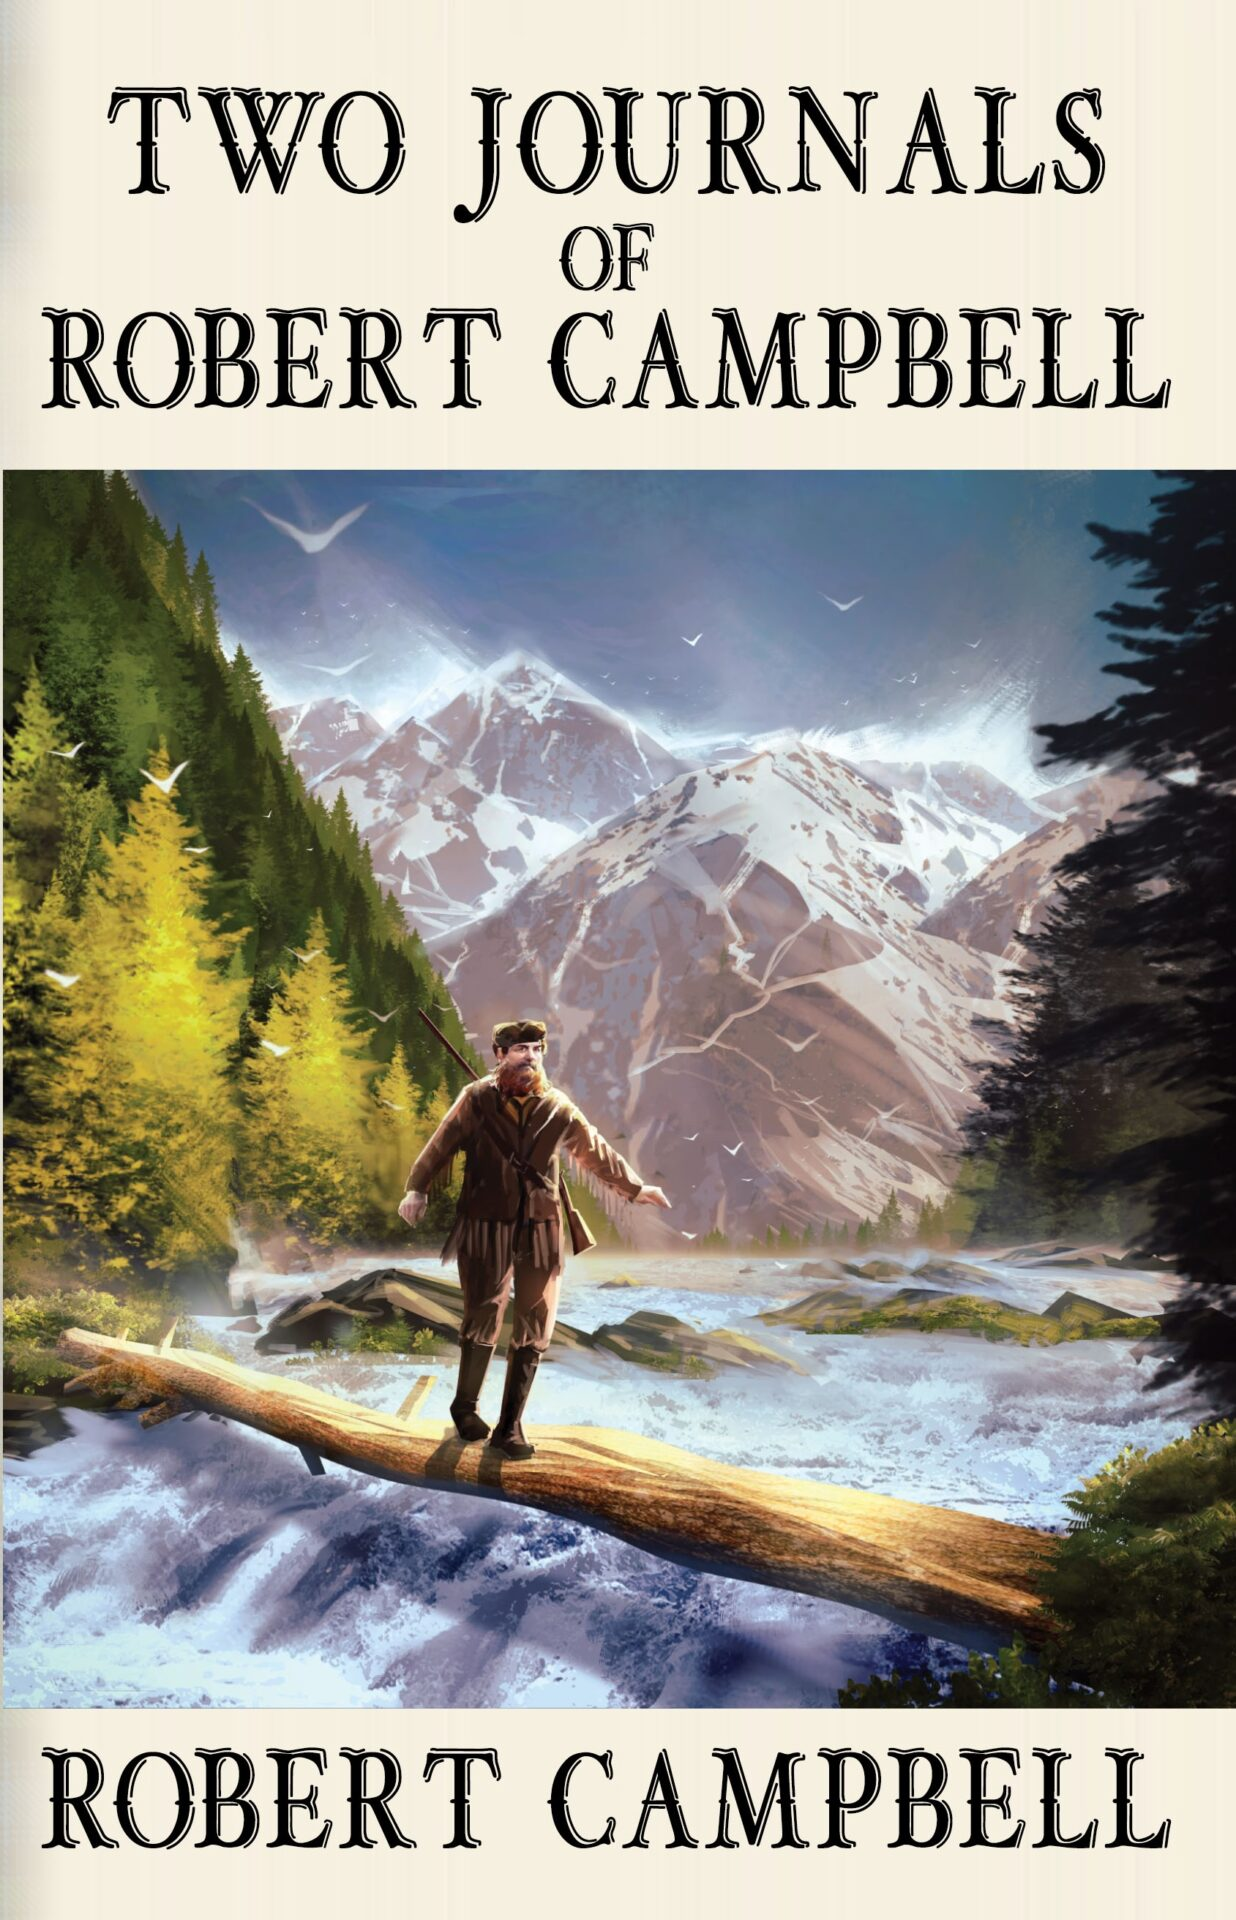 Two Journals of Robert Campbell